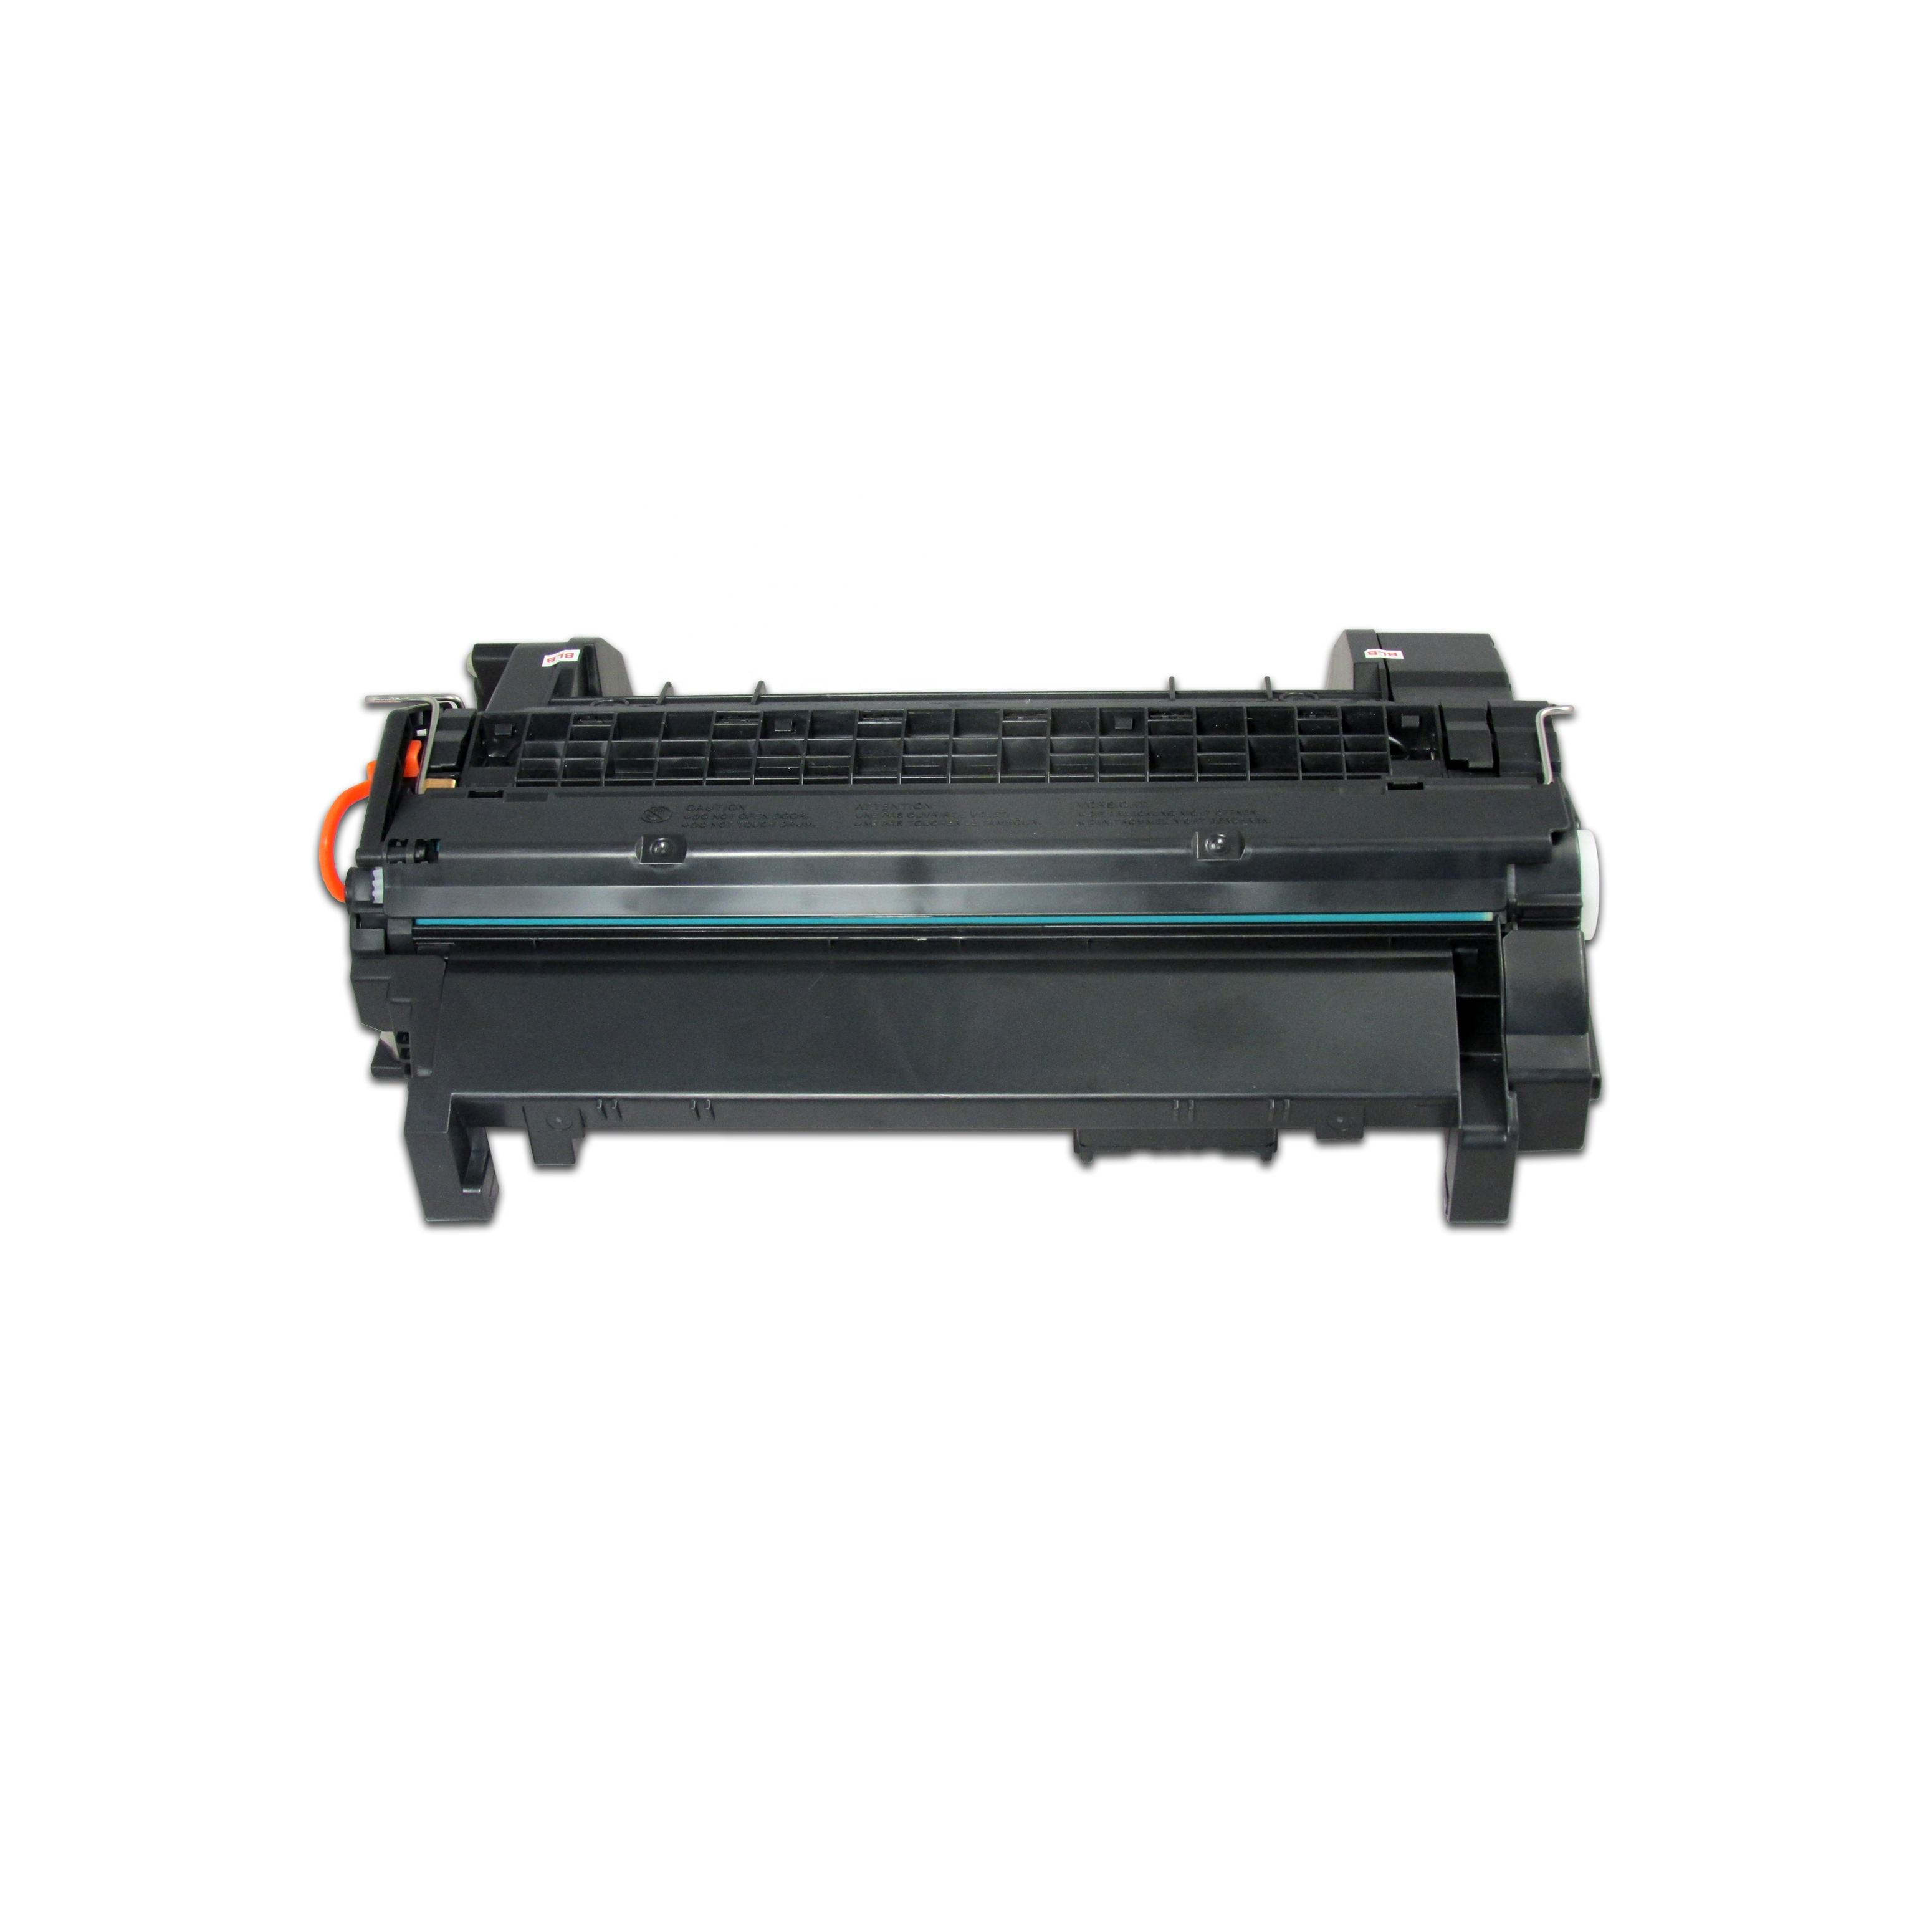 Compatible Toner Cartridges for Canon CRG-418 Replacement for Canon 7660 MF8350 MF8330C MF8380CDW LBP7200DN Printer with Chips Black Magenta Yellow Blue-Combination